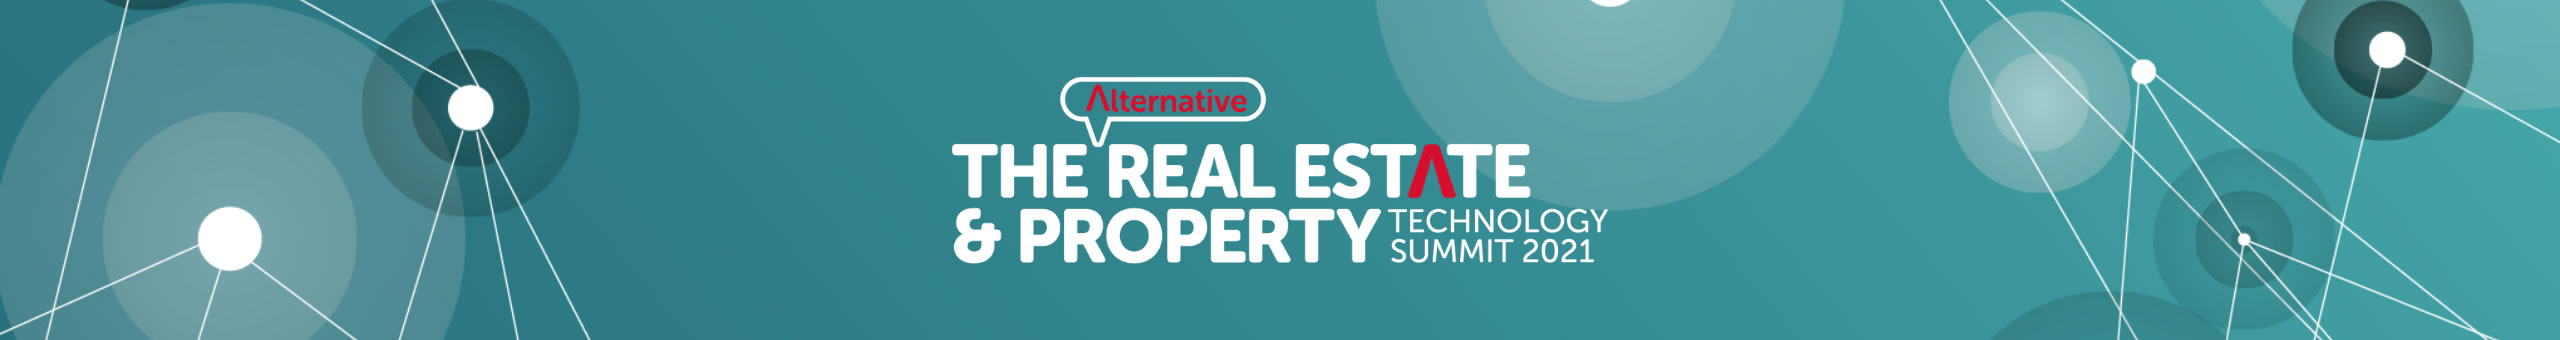 THE ALTERNATIVE REAL ESTATE AND PROPERTY TECHNOLOGY SUMMIT